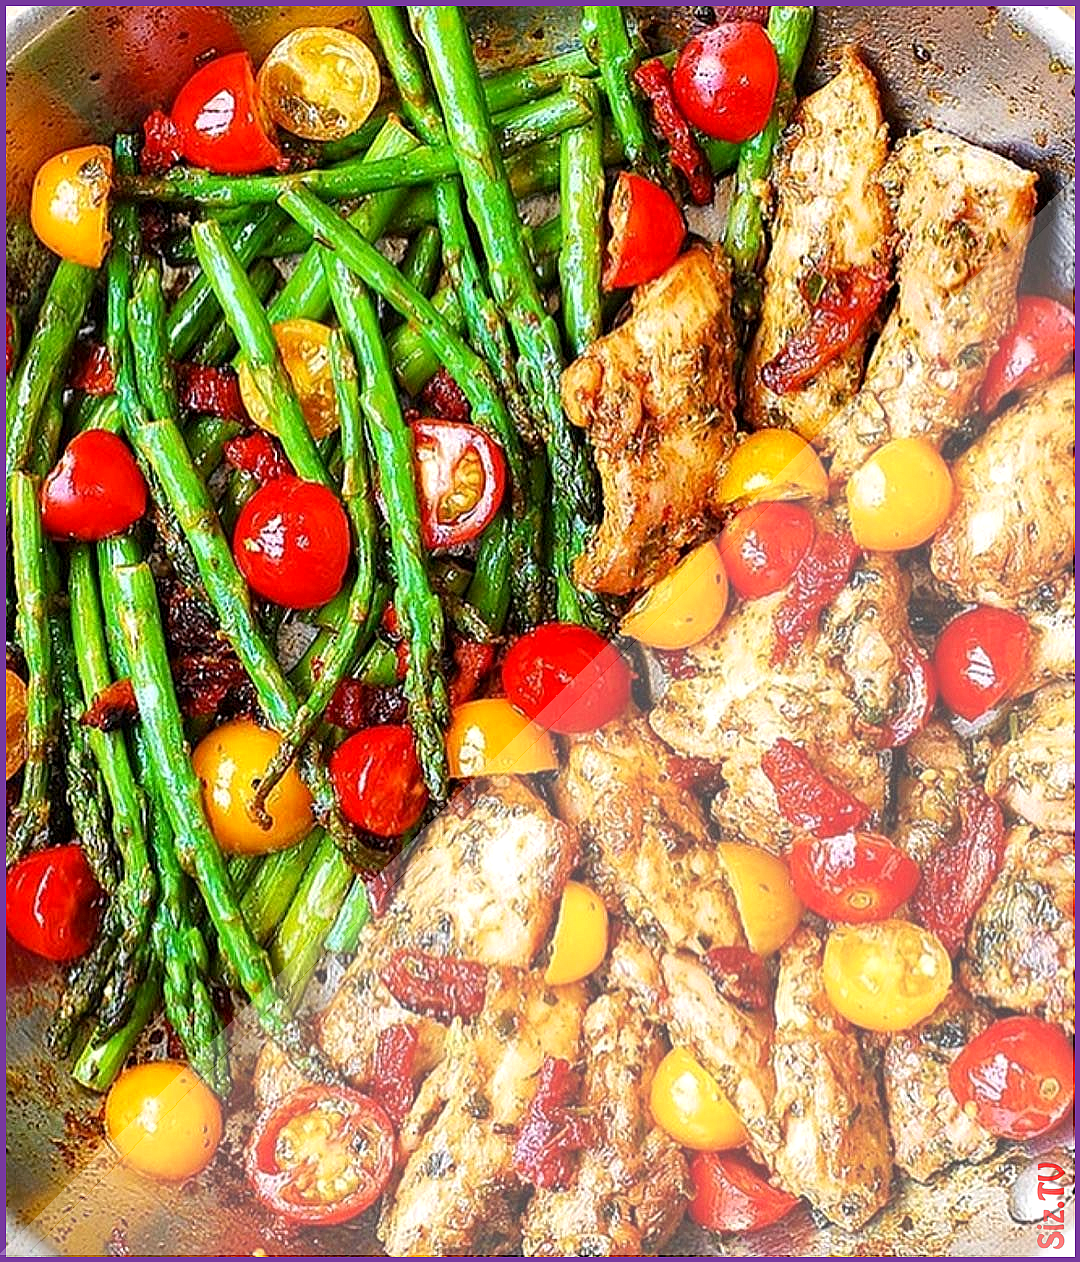 Chicken Asparagus Sun dried Tomatoes follow  deliciousfoodvideos  Hashtag Shredded Academy  us in yo...